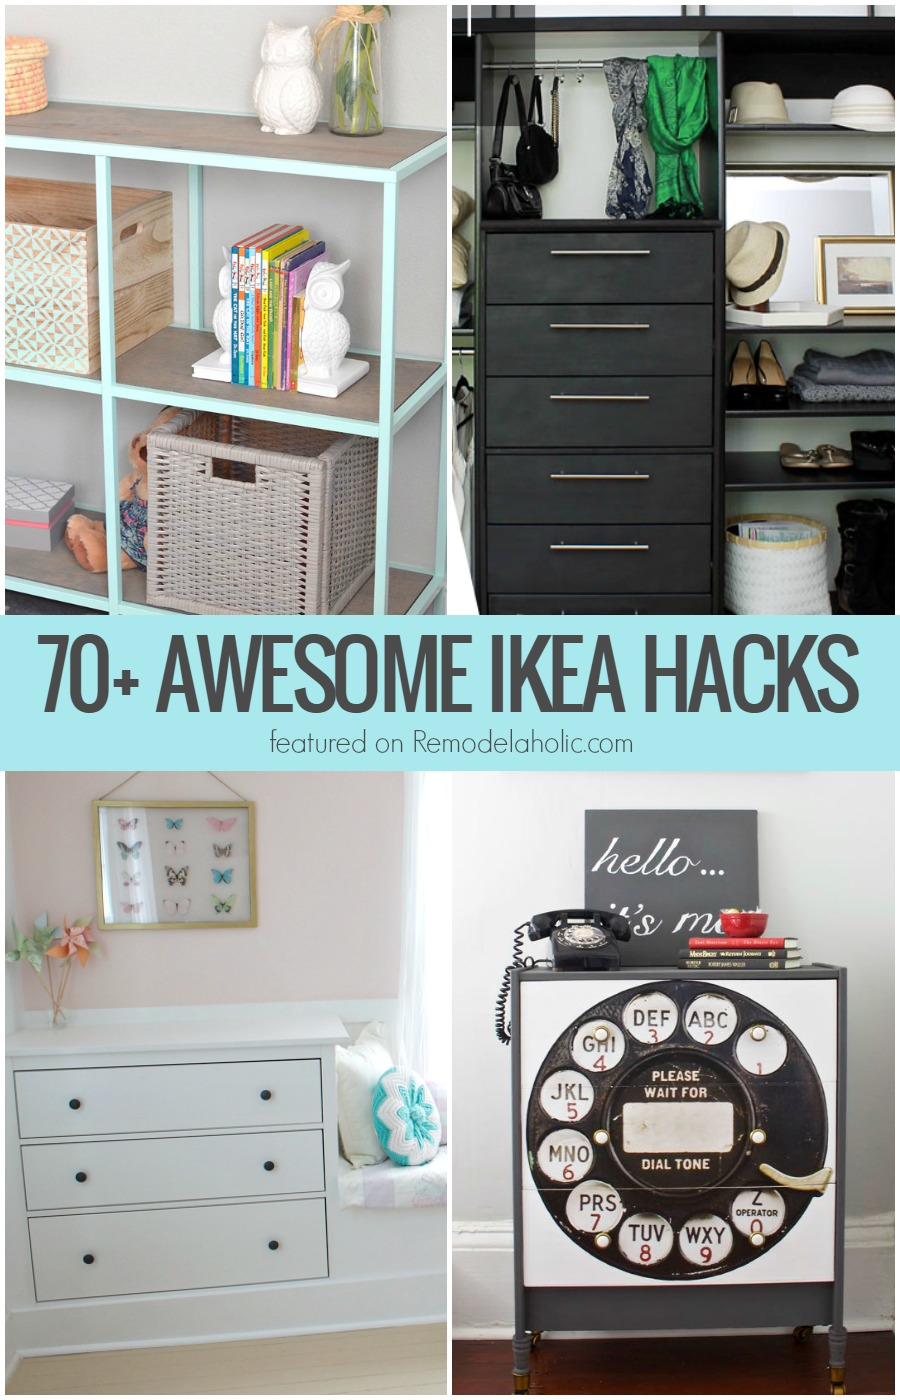 Remodelaholic | 70+ Awesome IKEA Projects